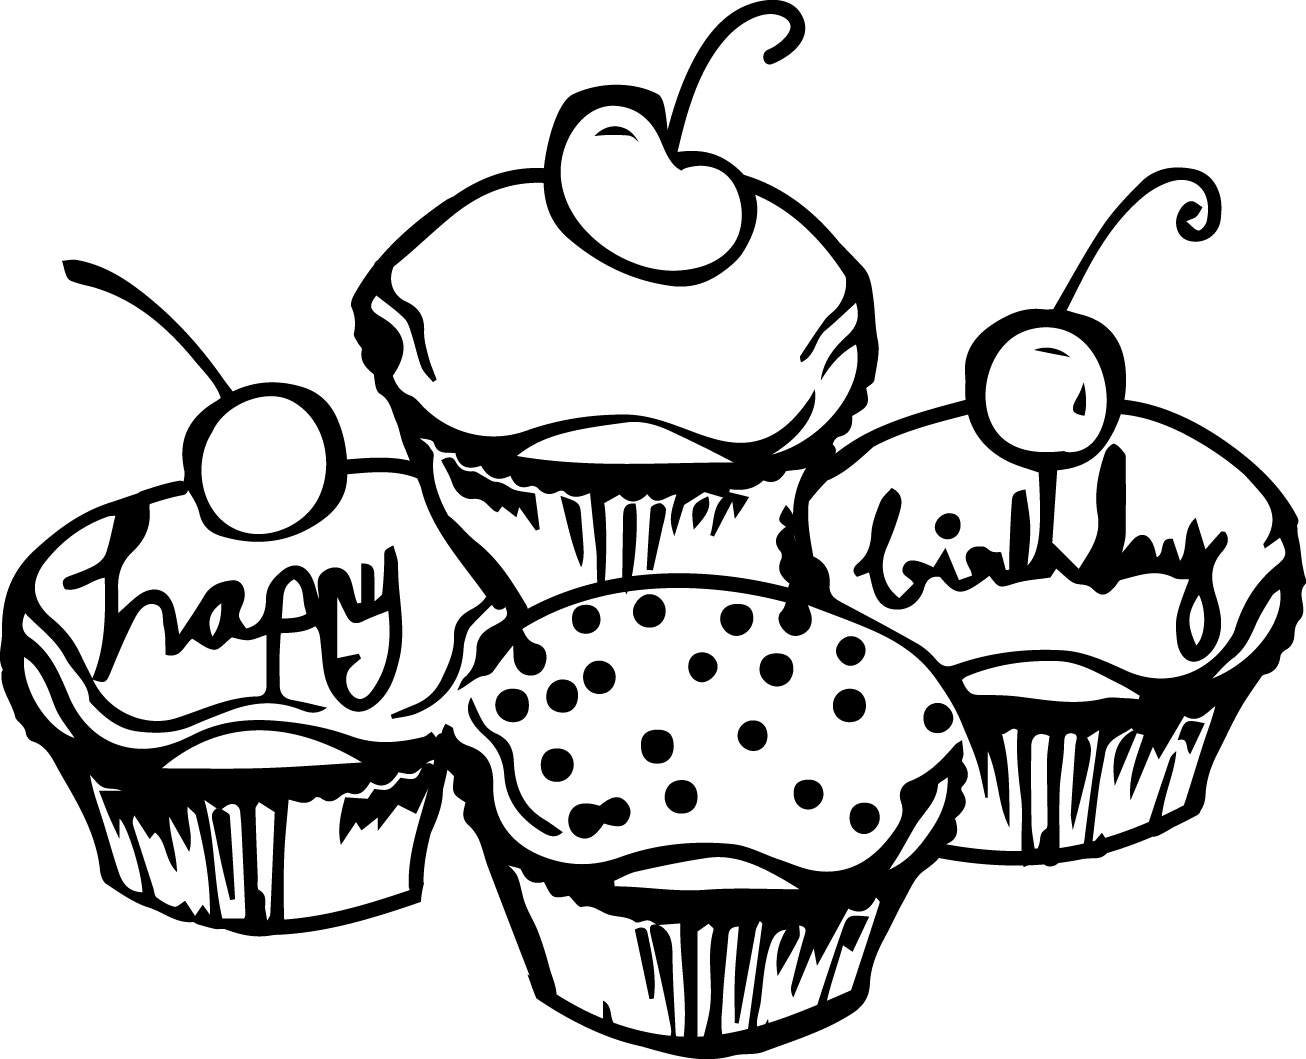 Birthday Cake Cupcakes Coloring Page | Wecoloringpage.com